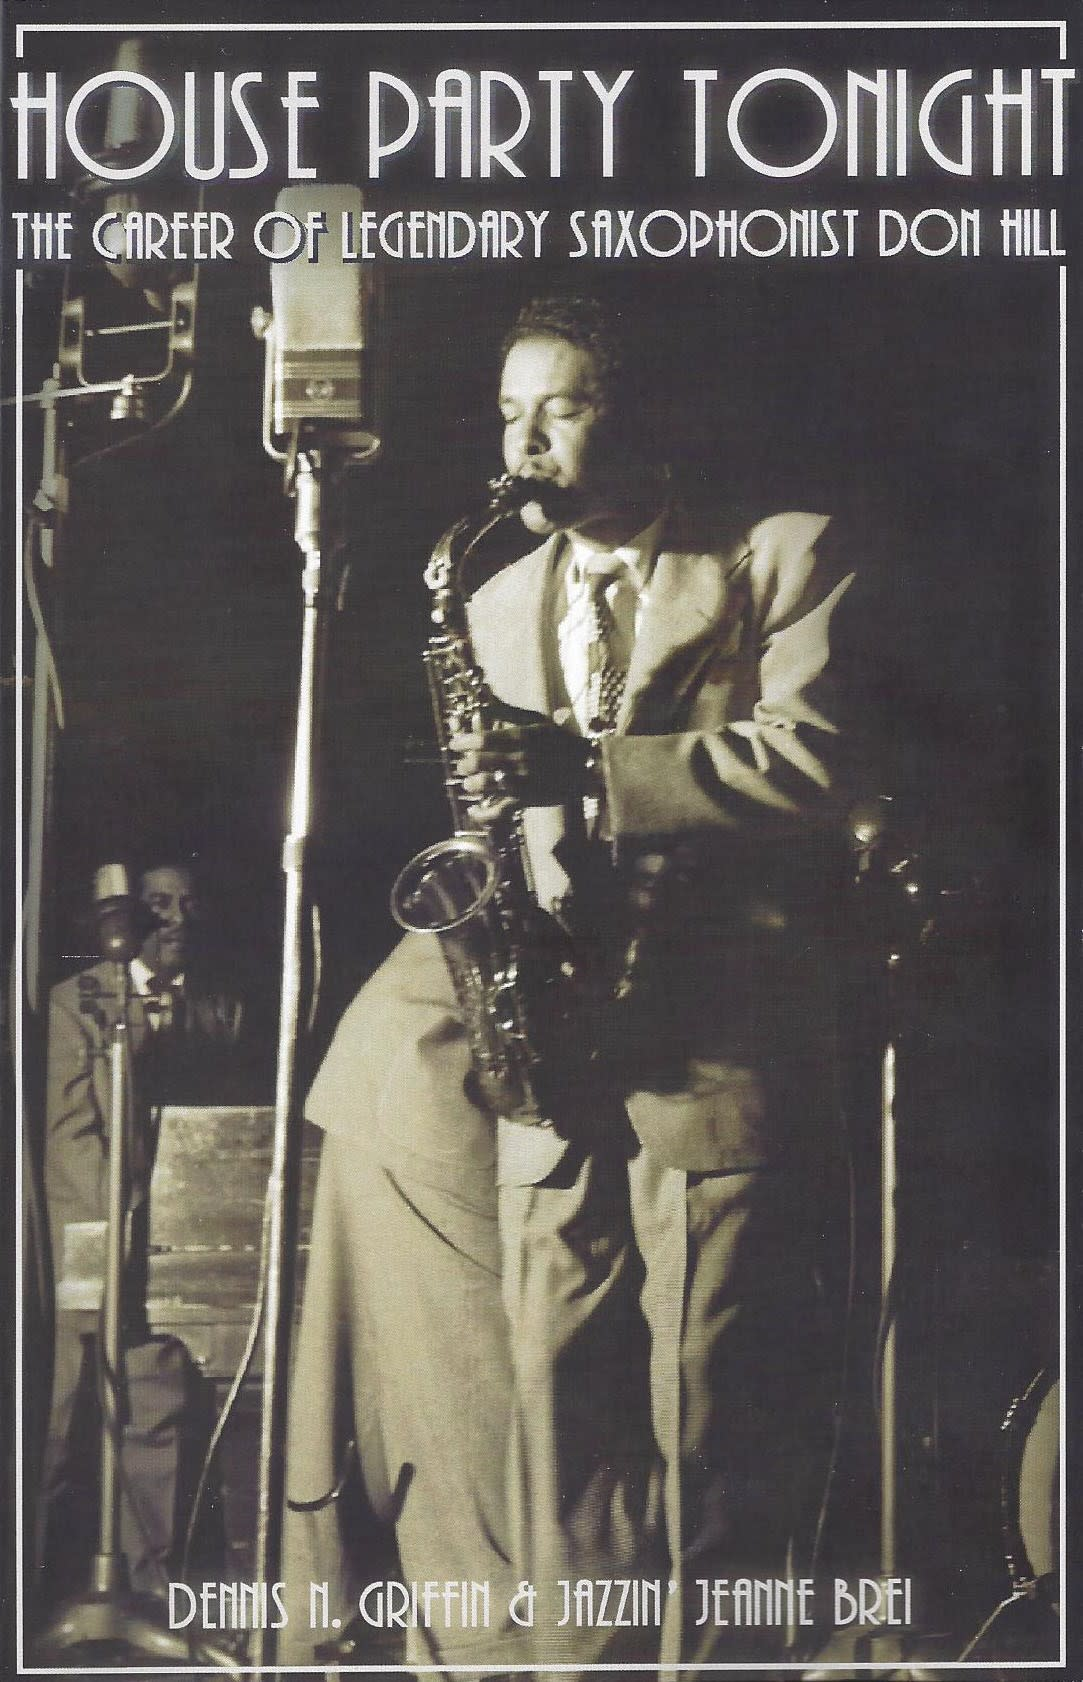 House Party Tonight- The Career of Legendary Saxophonist Don Hill